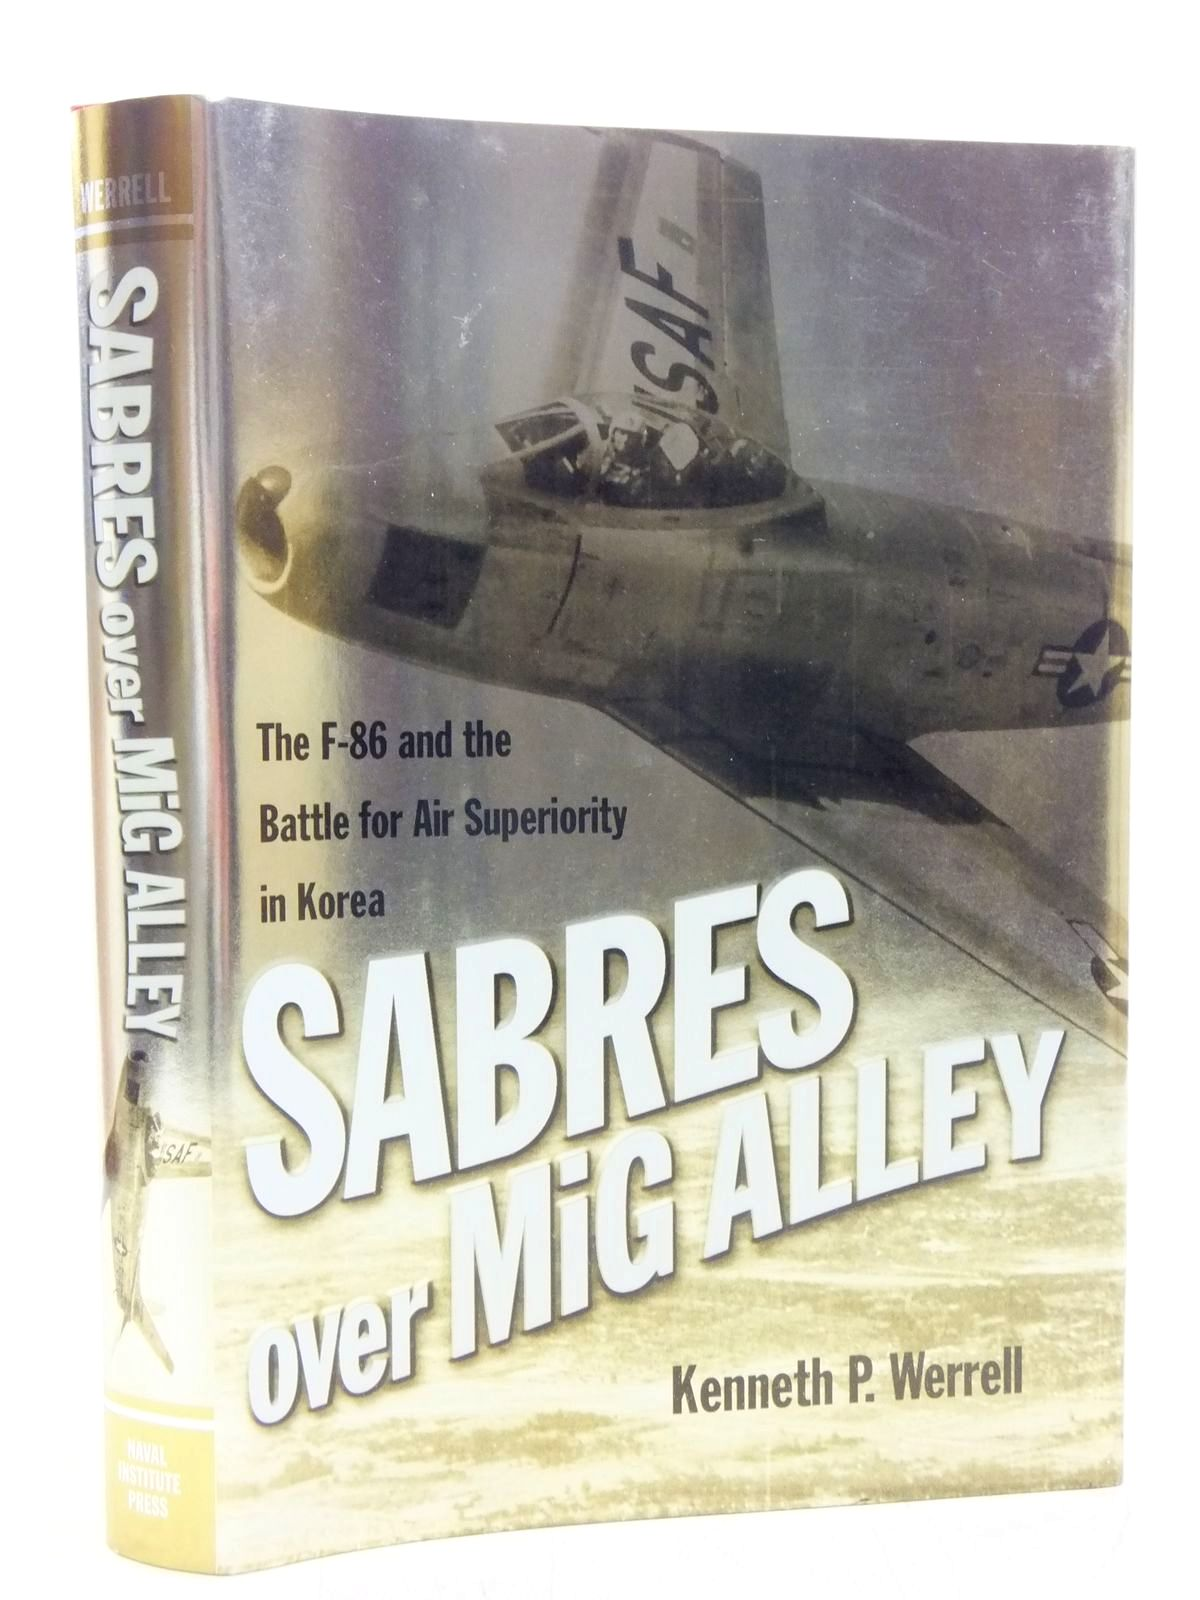 Photo of SABRES OVER MIG ALLEY written by Werrell, Kenneth P. published by Naval Institute Press (STOCK CODE: 2119062)  for sale by Stella & Rose's Books